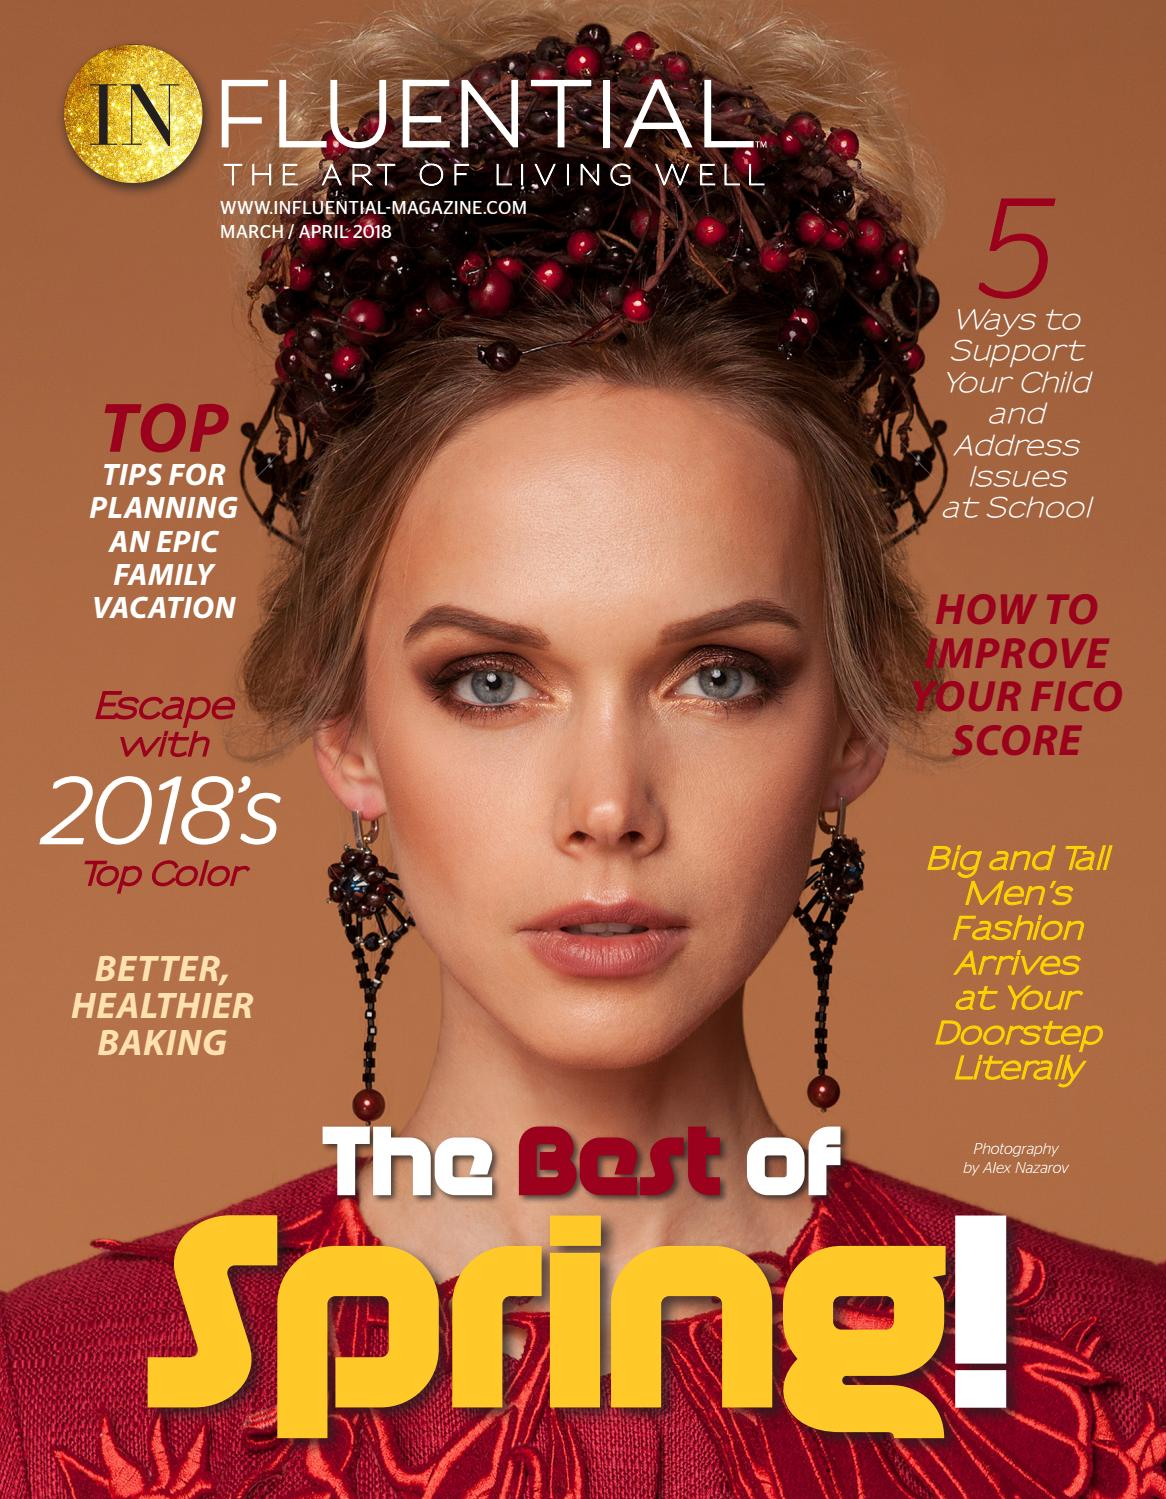 March April 2018 Subscriptions: March / April 2018 InFluential Magazine, Spanish